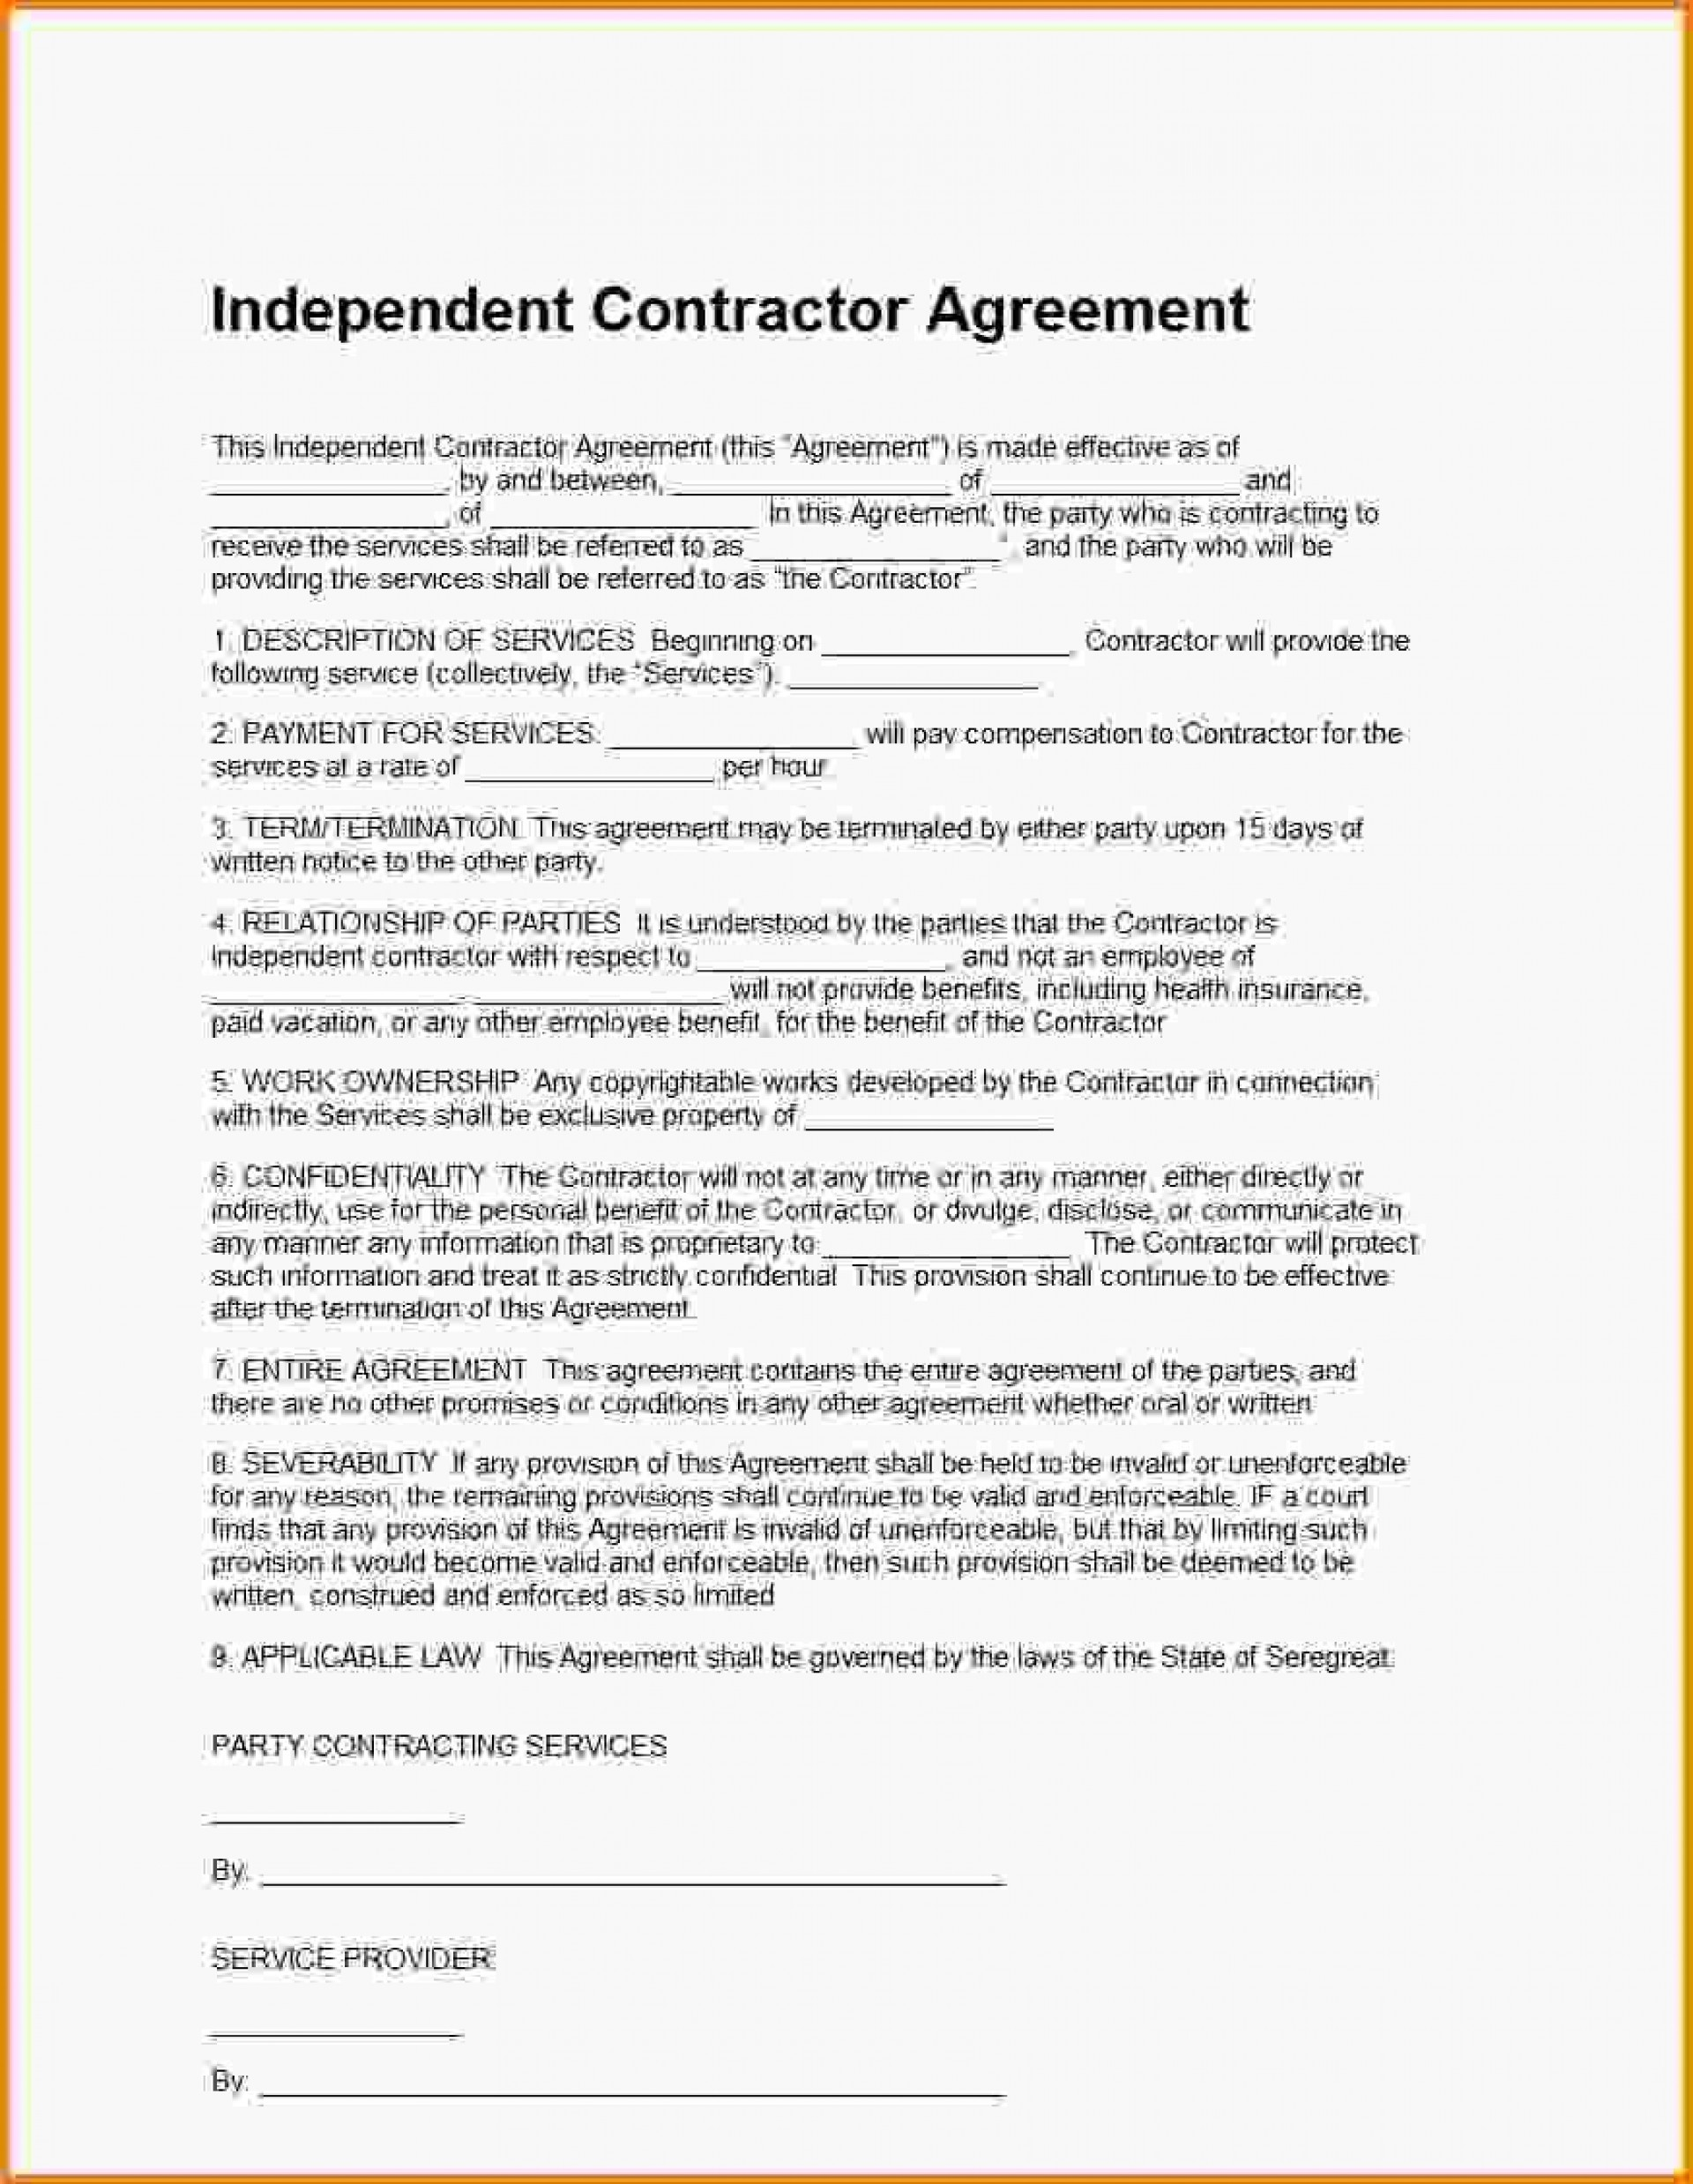 000 Shocking Independent Consultant Contract Template Image  Free Contractor Consulting Agreement South Africa1920